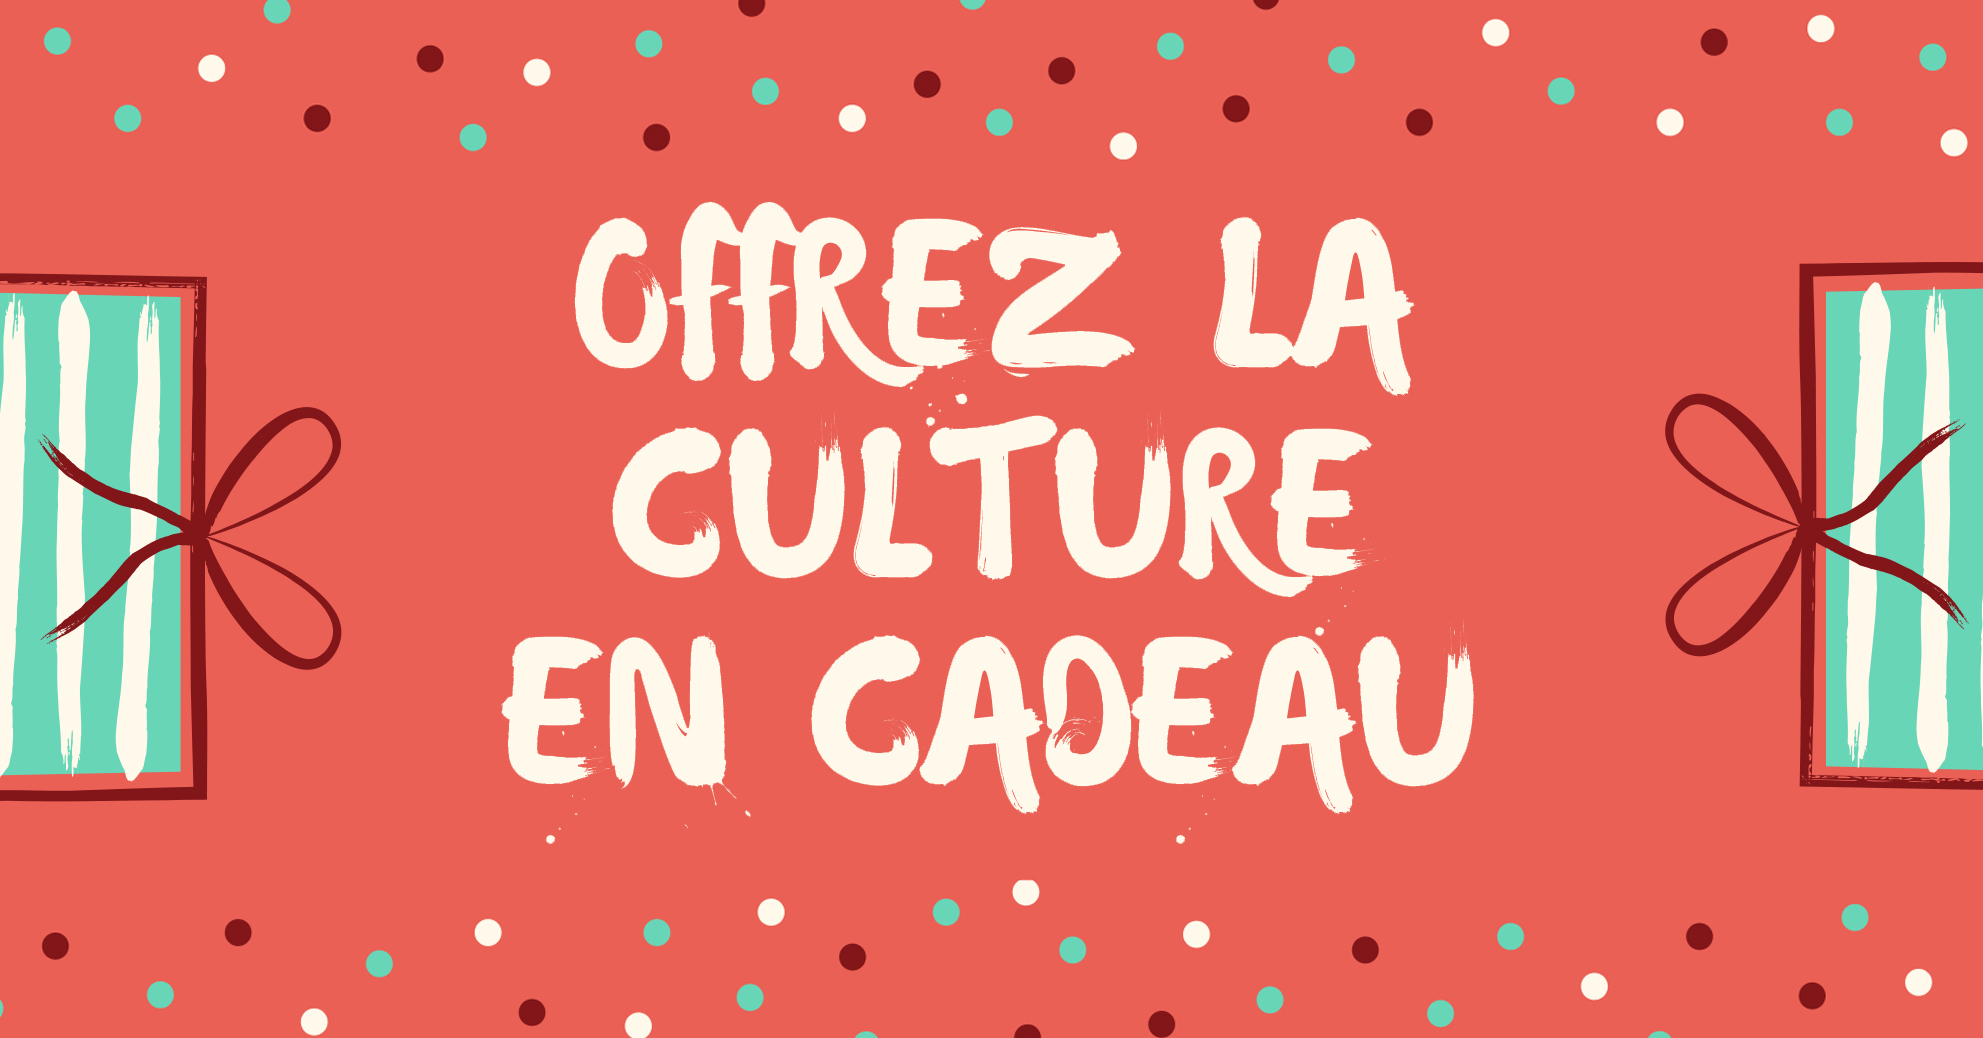 This year, give a gift of culture!